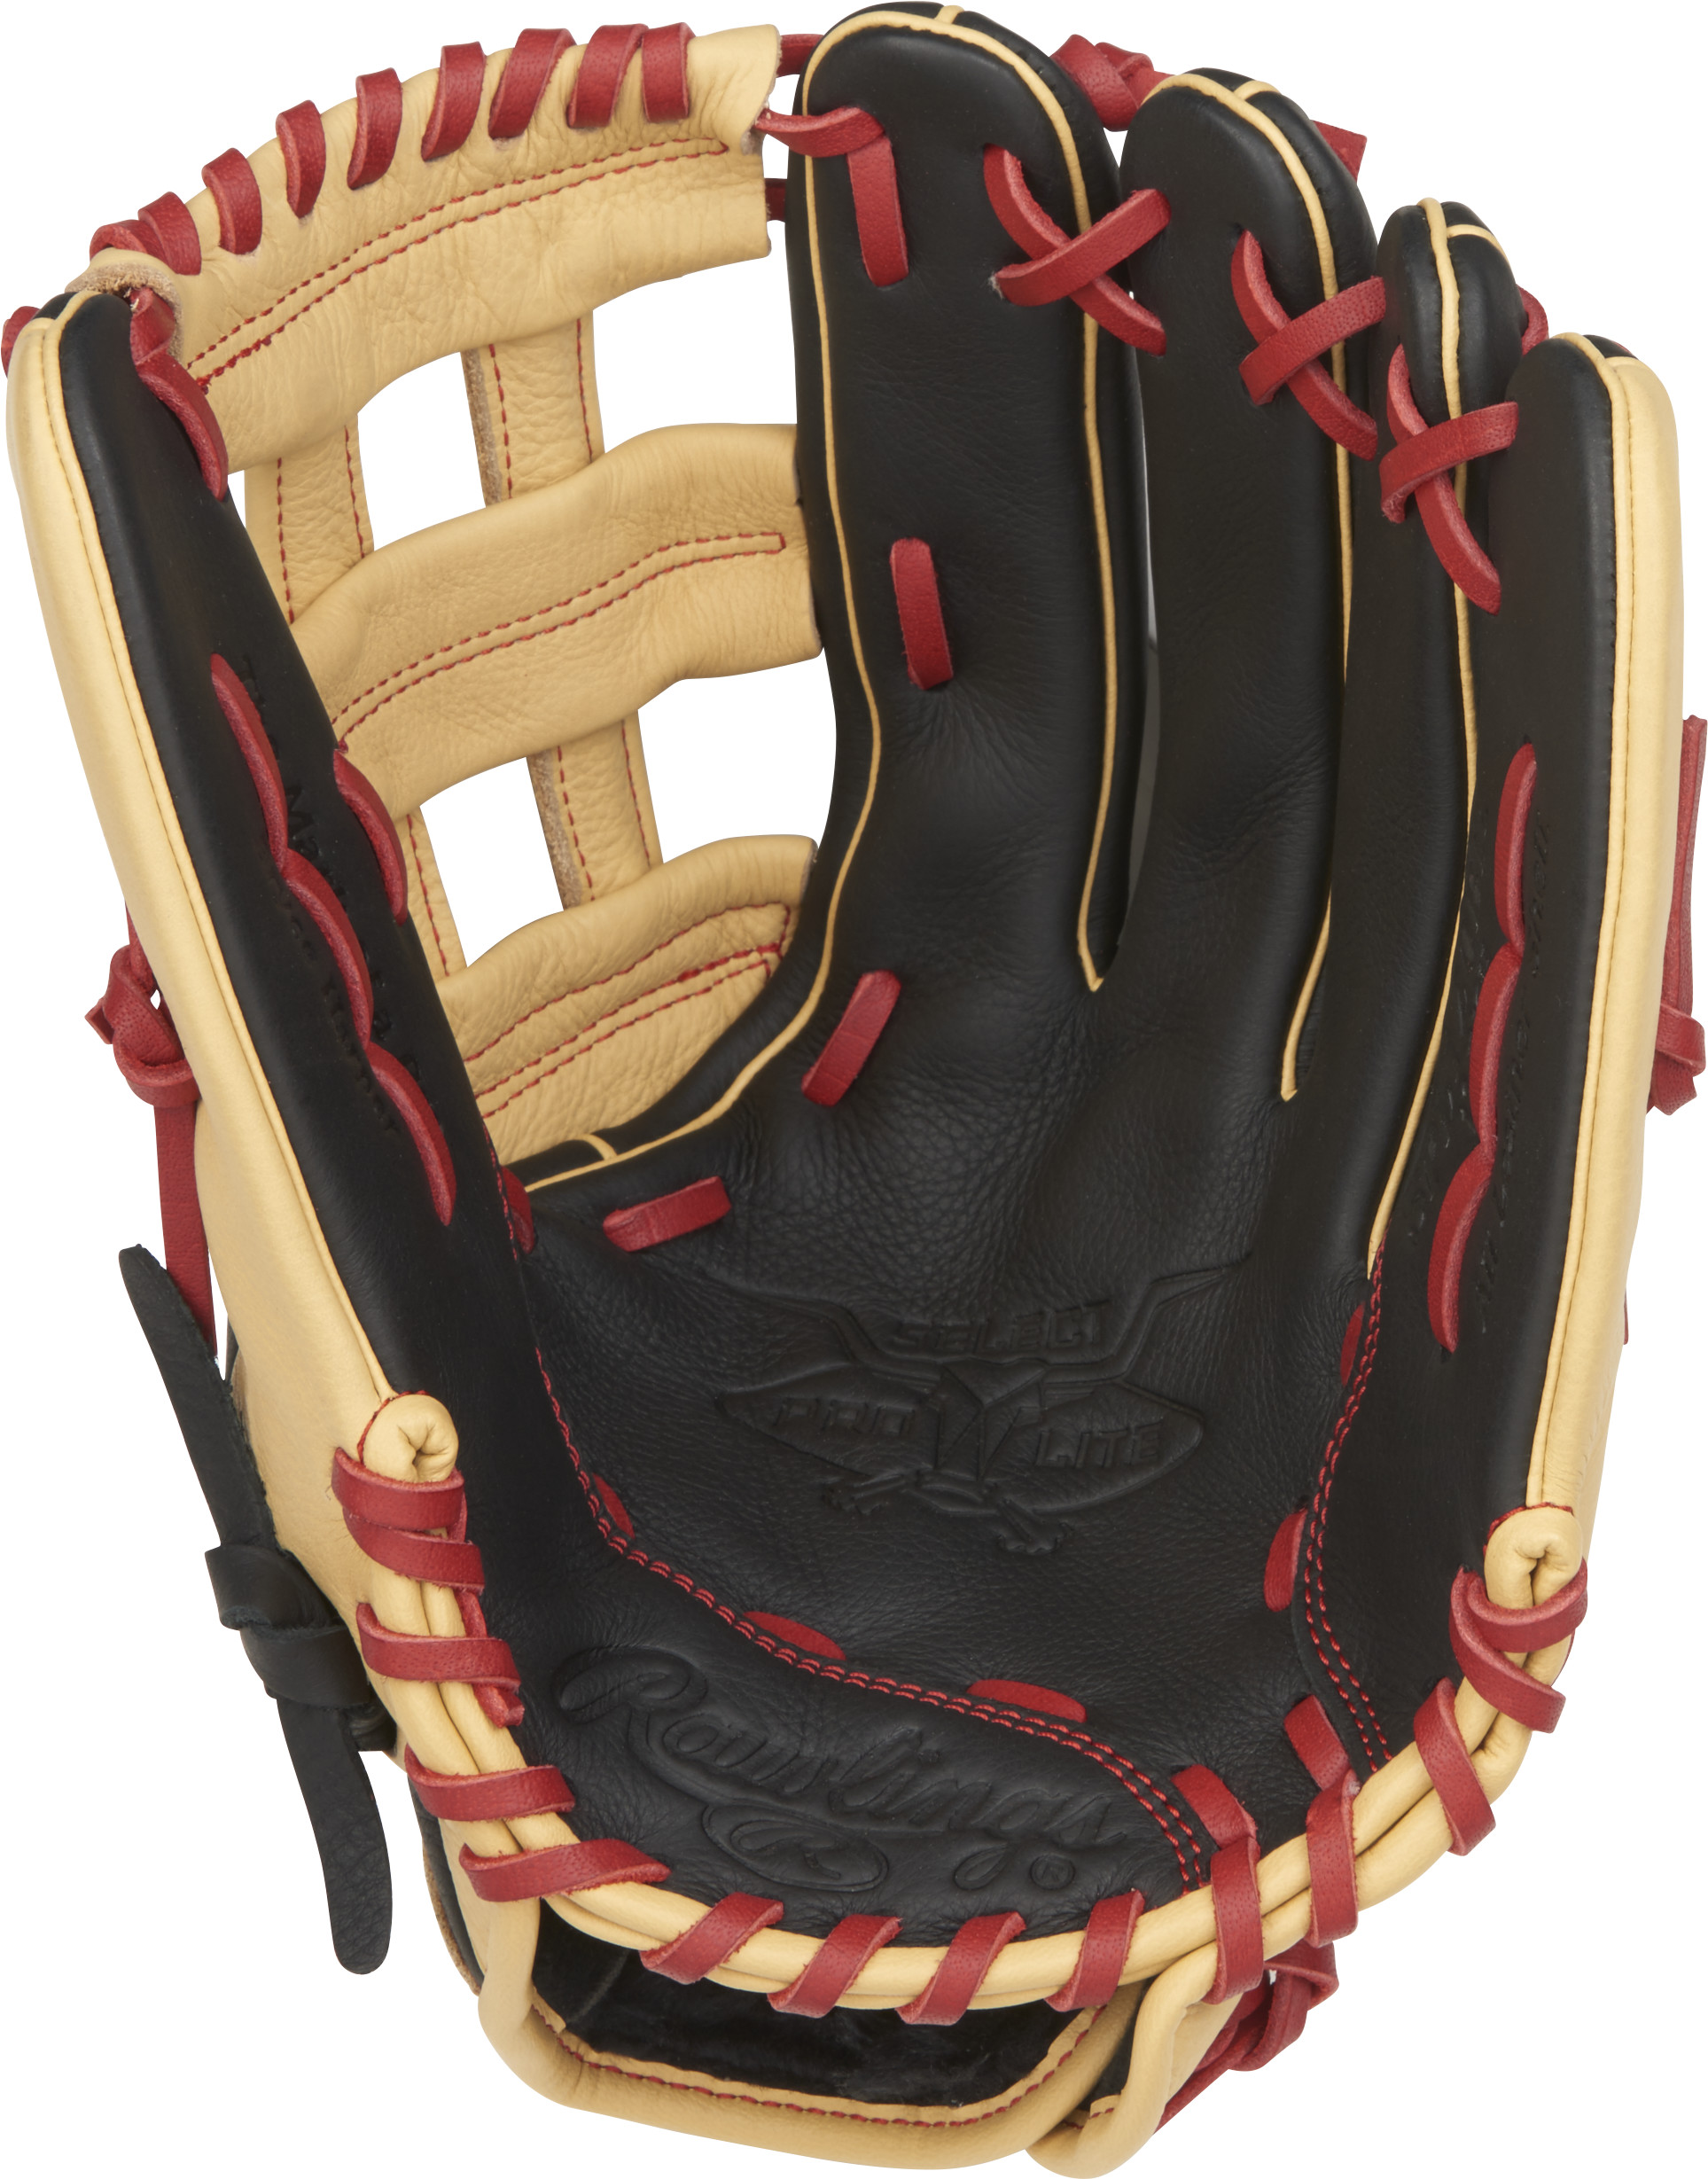 http://www.bestbatdeals.com/images/gloves/rawlings/SPL120BH-1.jpg